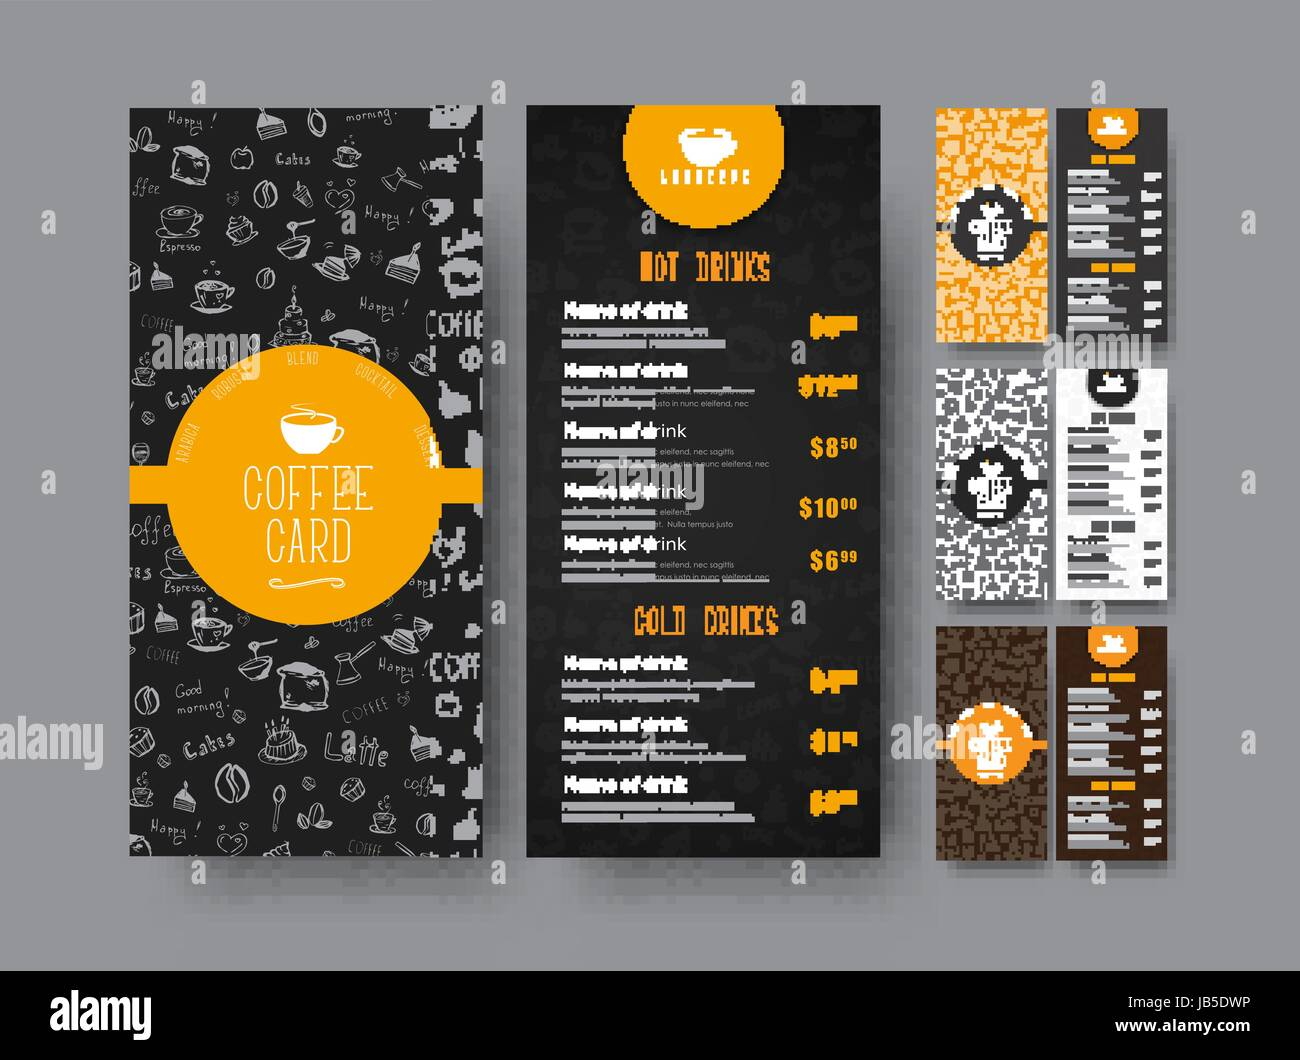 template of the coffee menu for a cafe or restaurant design